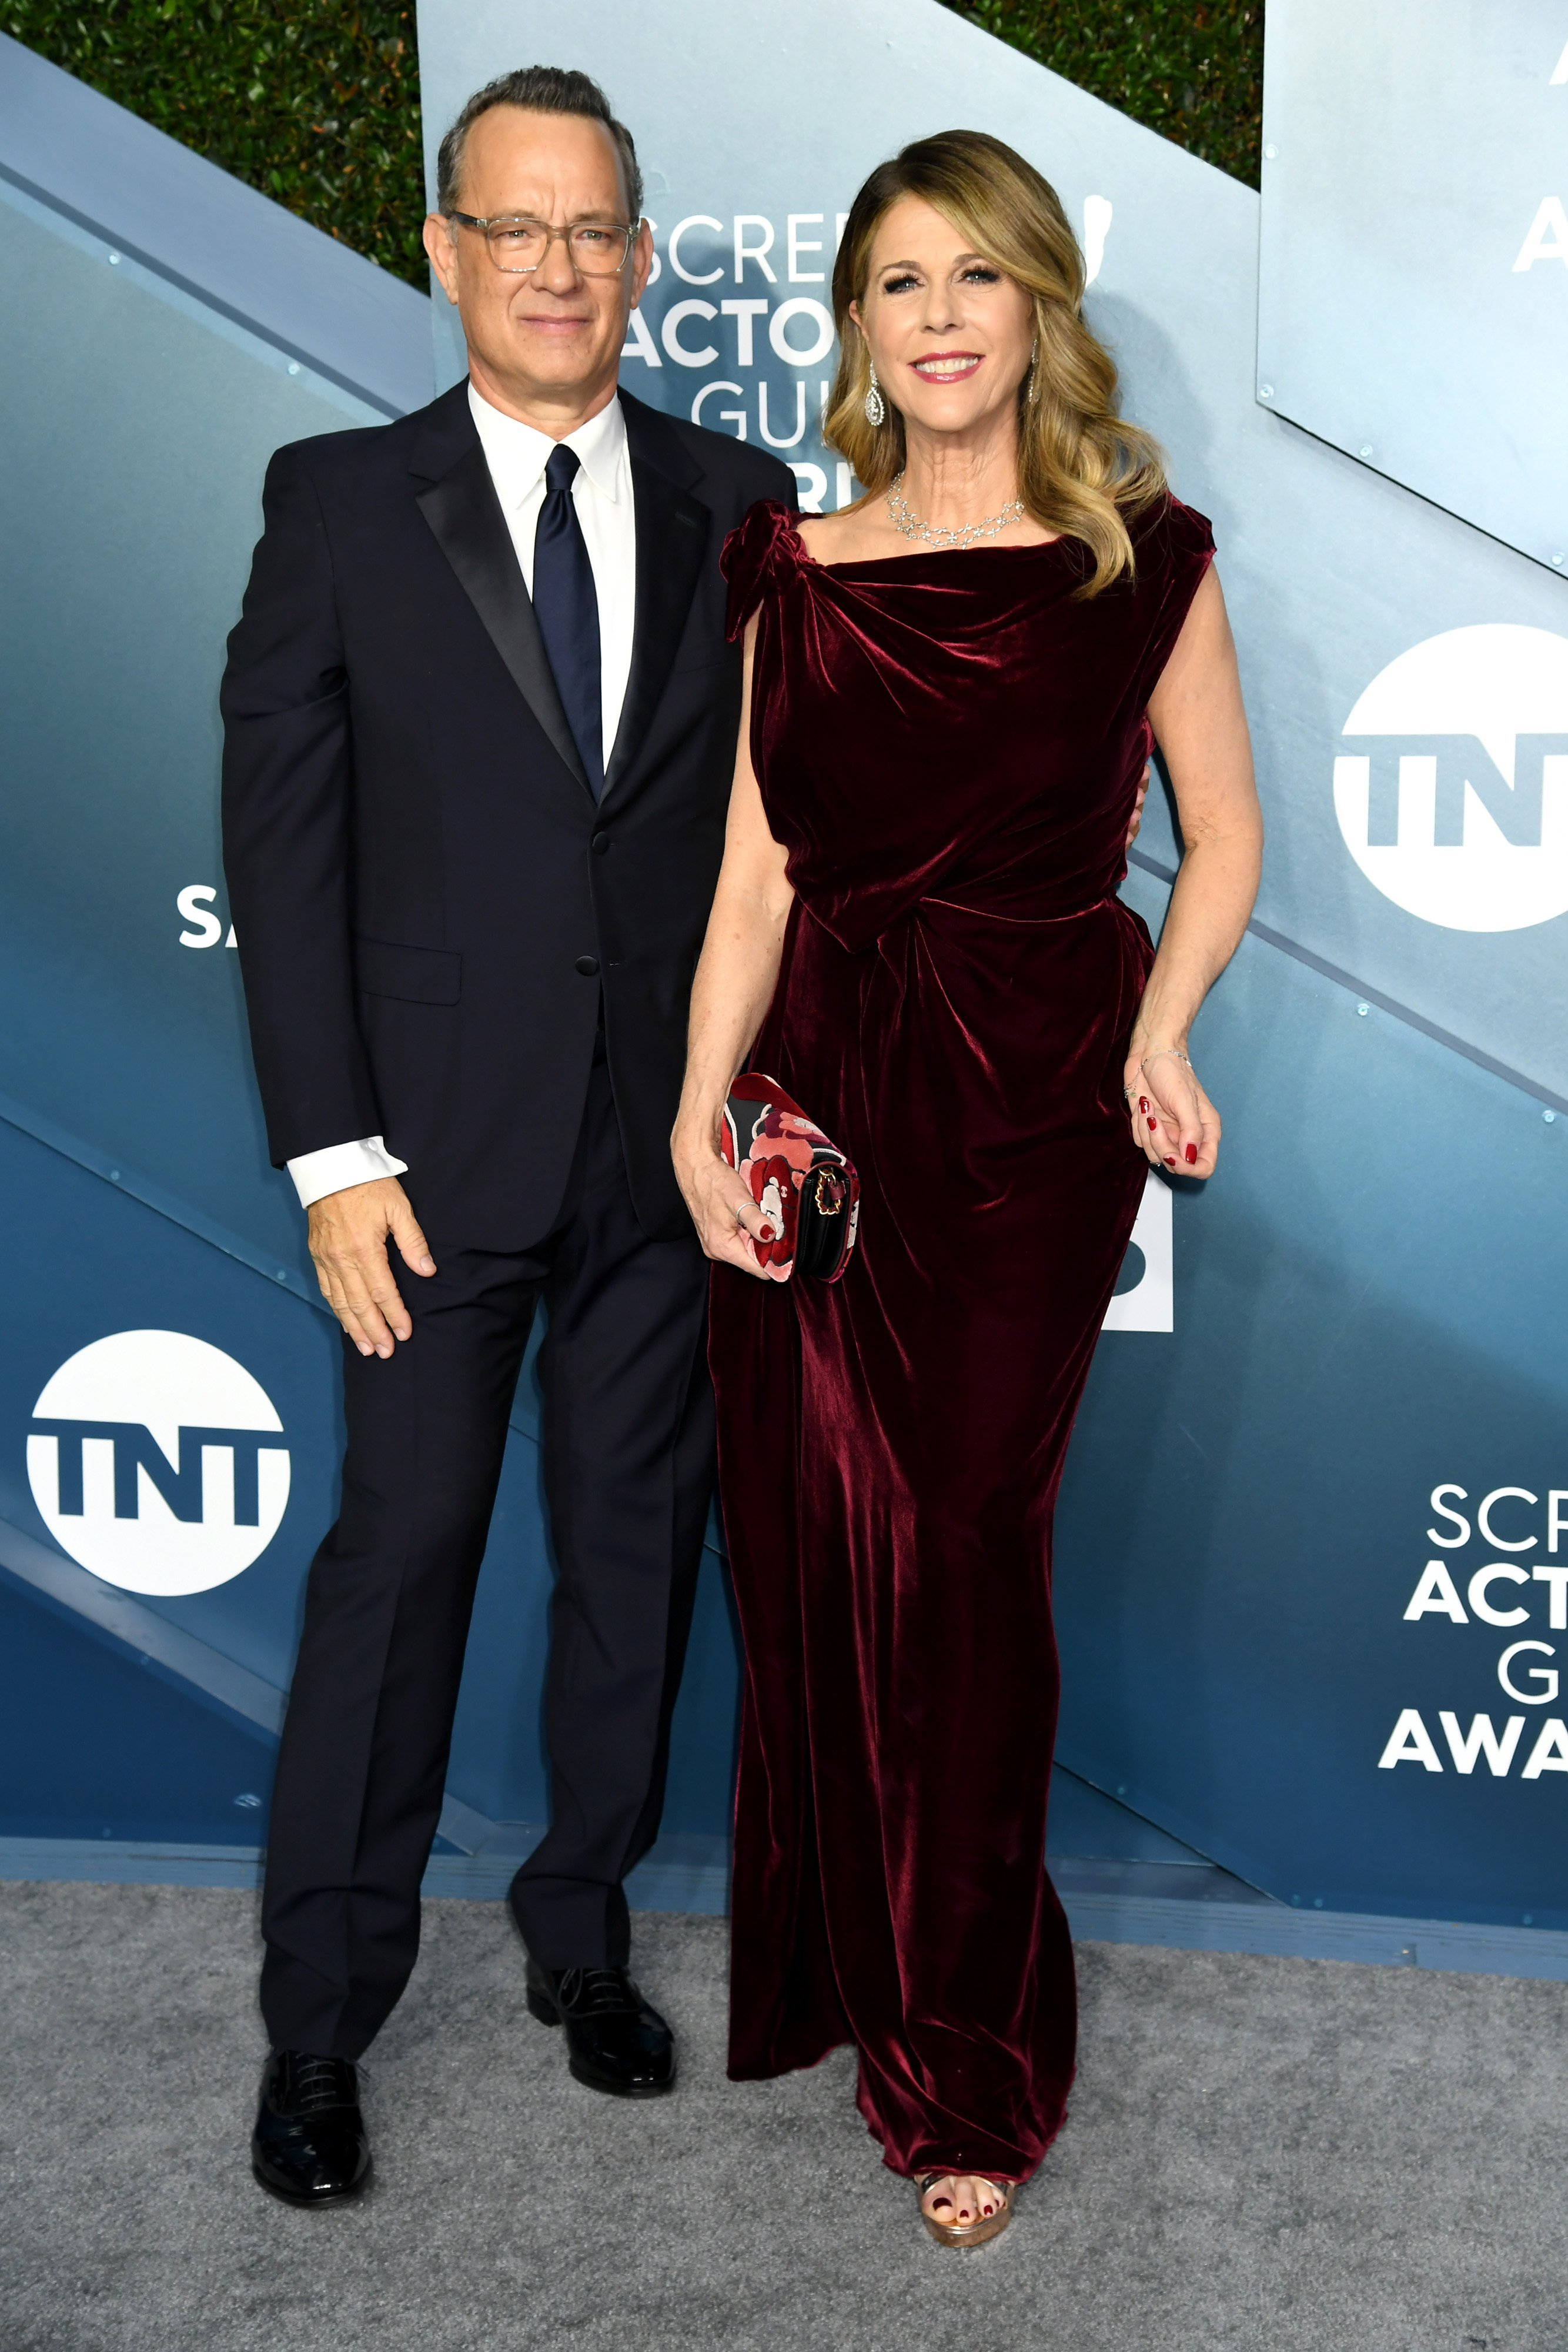 Tom Hanks and Rita Wilson attends the 26th Annual Screen ActorsGuild Awards on January 19, 2020, in Los Angeles, California. | Source: Getty Images.